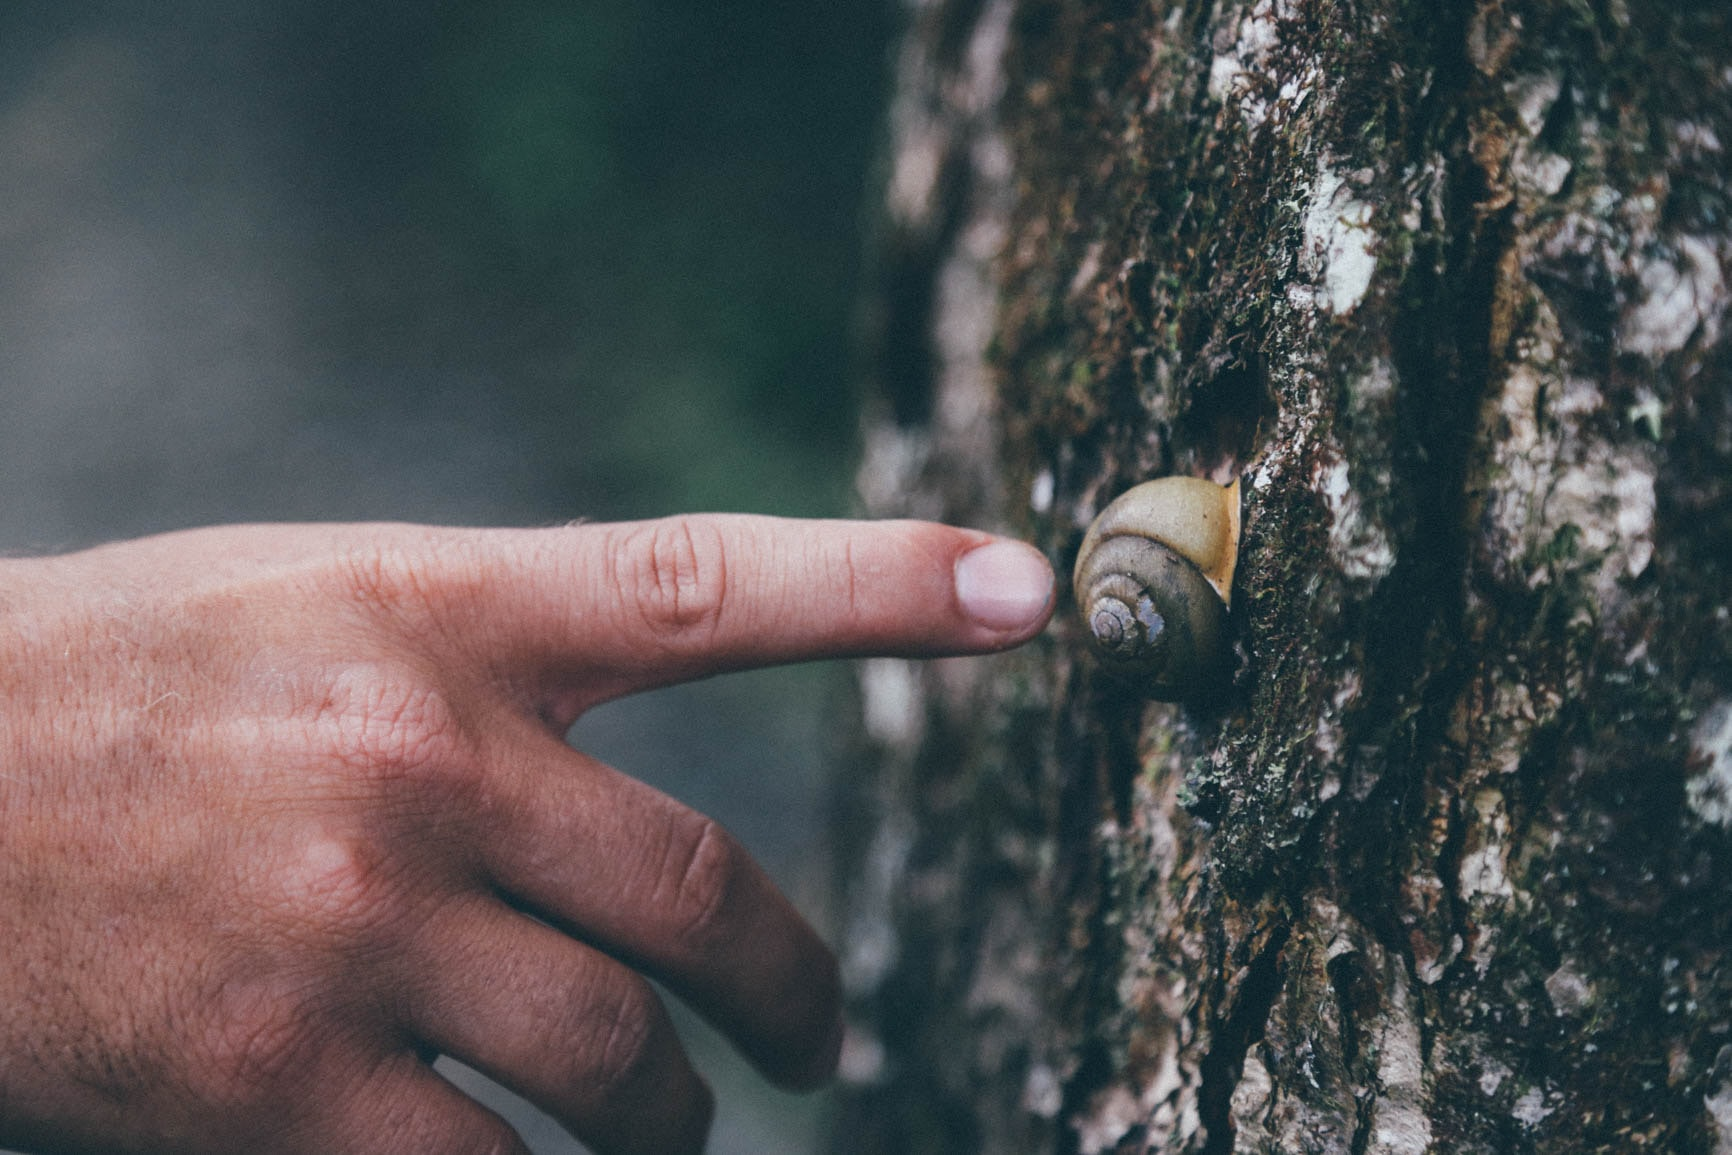 A man's finger outstretched in the direction of a snail hiding in its shell on tree bark